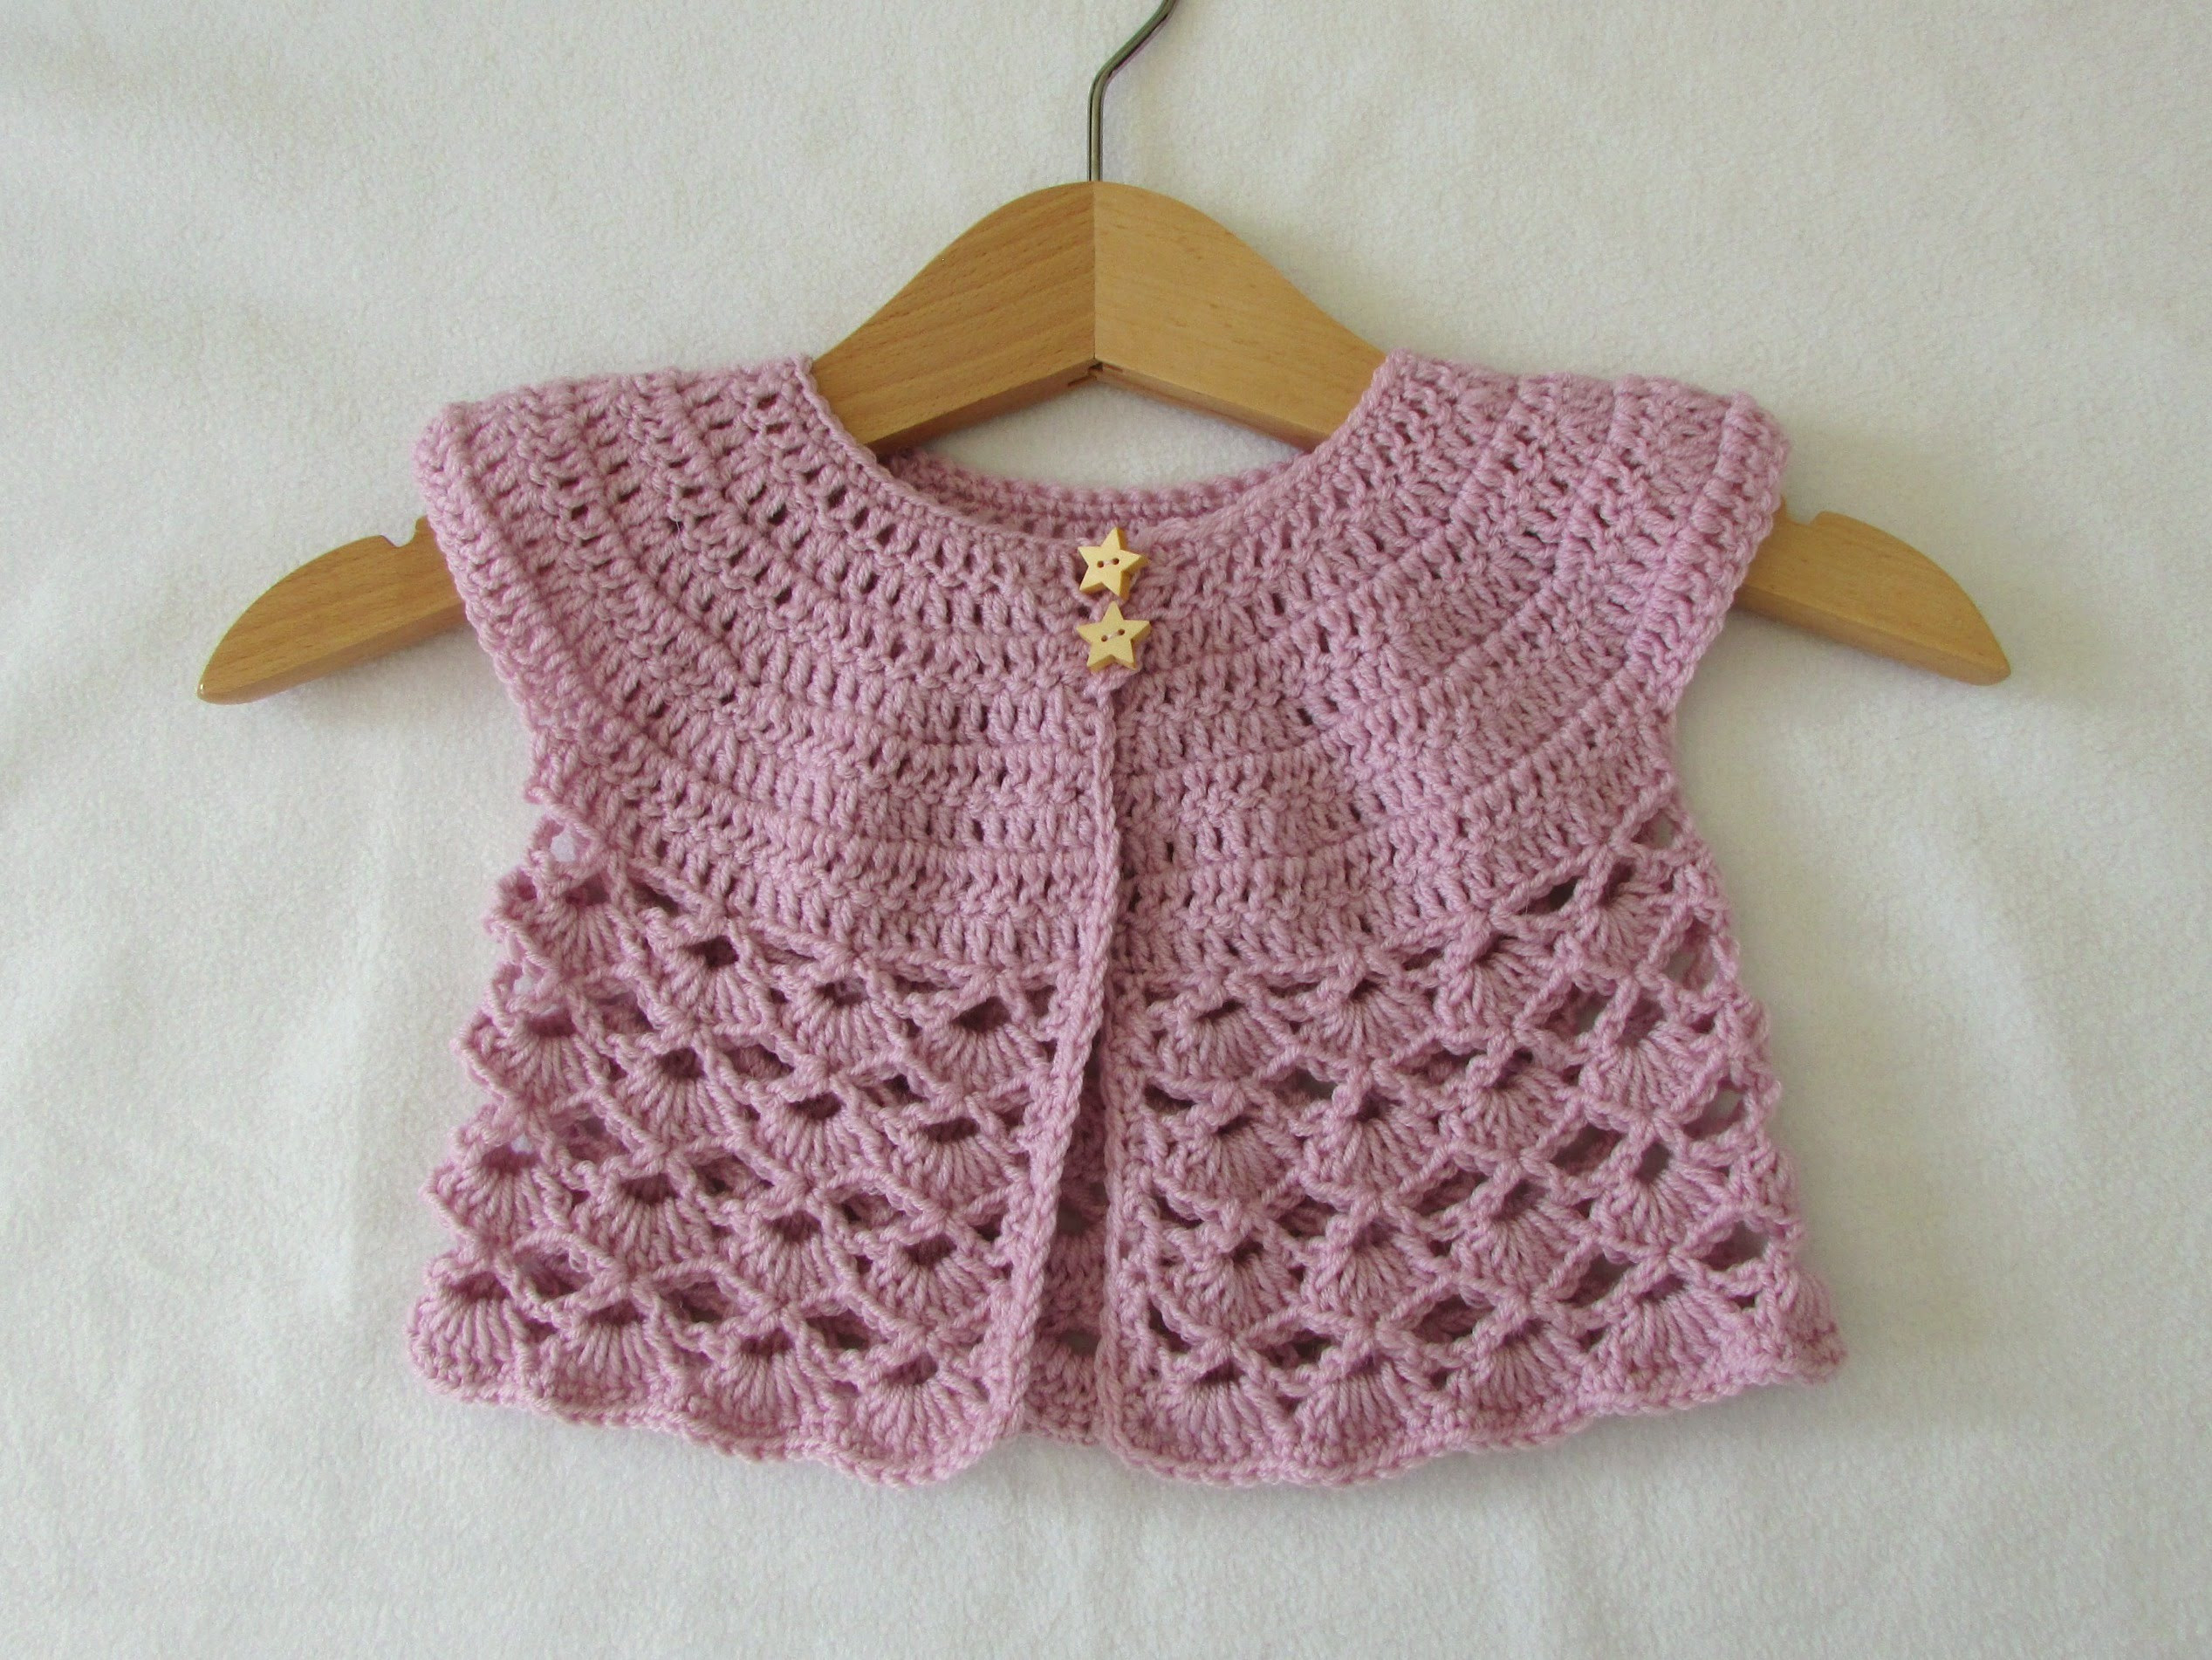 Luxury How to Crochet Baby Sweater Cottageartcreations Easy Crochet Sweater Pattern Of Elegant Telluride Easy Knit Kimono Pattern – Mama In A Stitch Easy Crochet Sweater Pattern